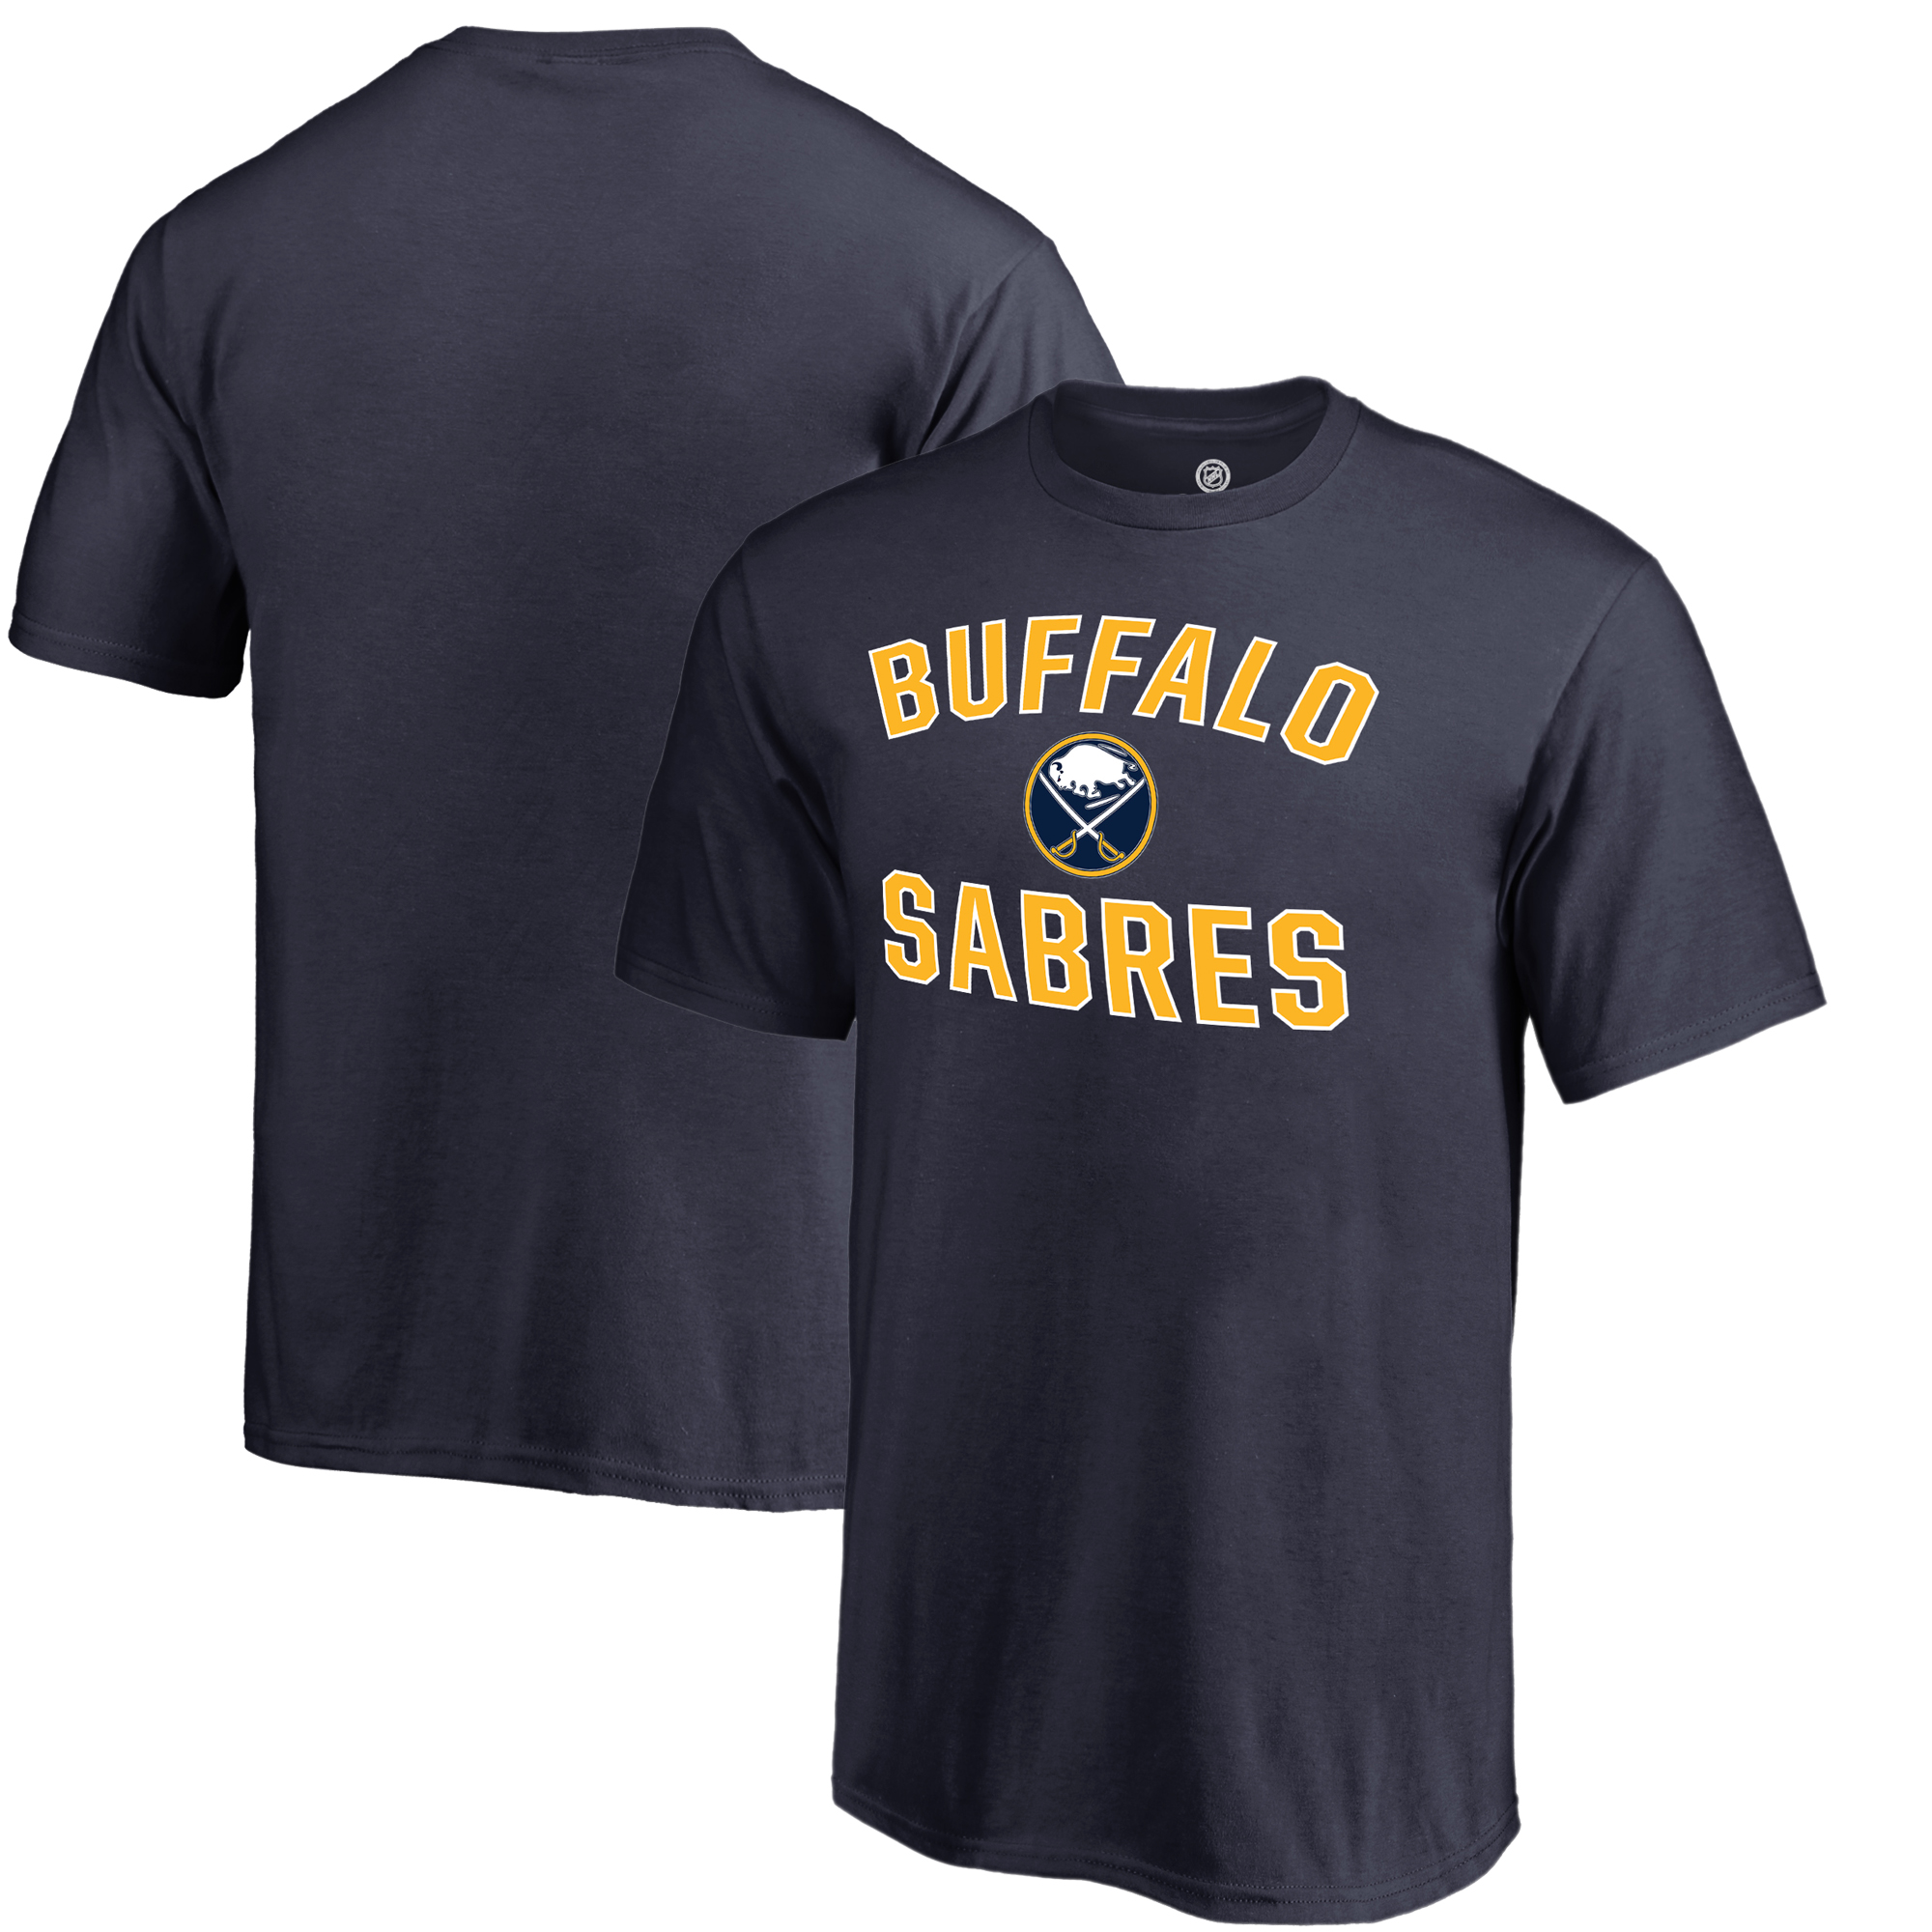 Buffalo Sabres Fanatics Branded Youth Victory Arch T-Shirt - Navy